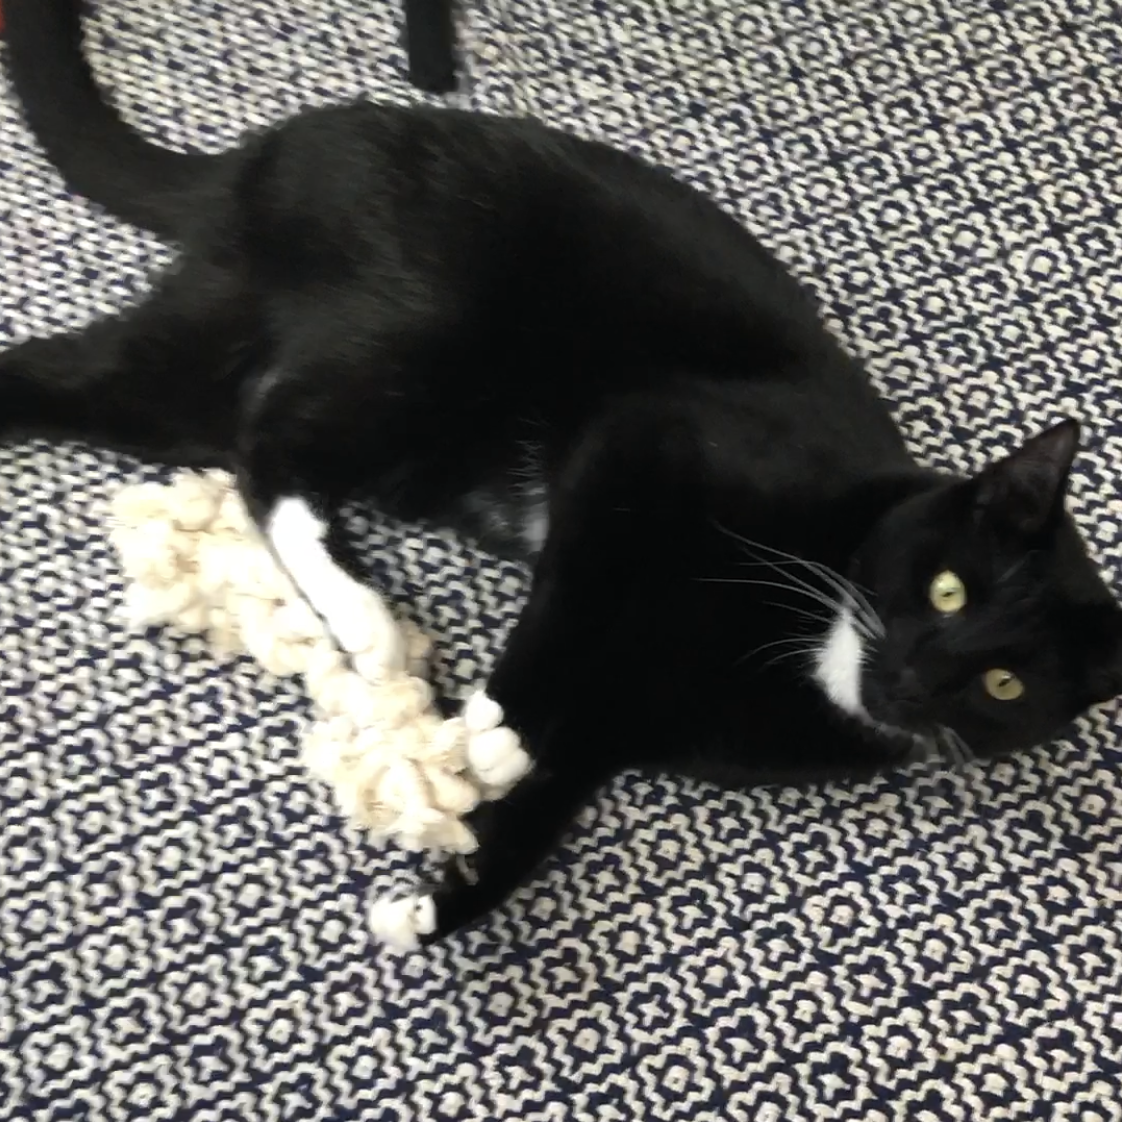 Merlin playing with rope toy Kick It Kitty